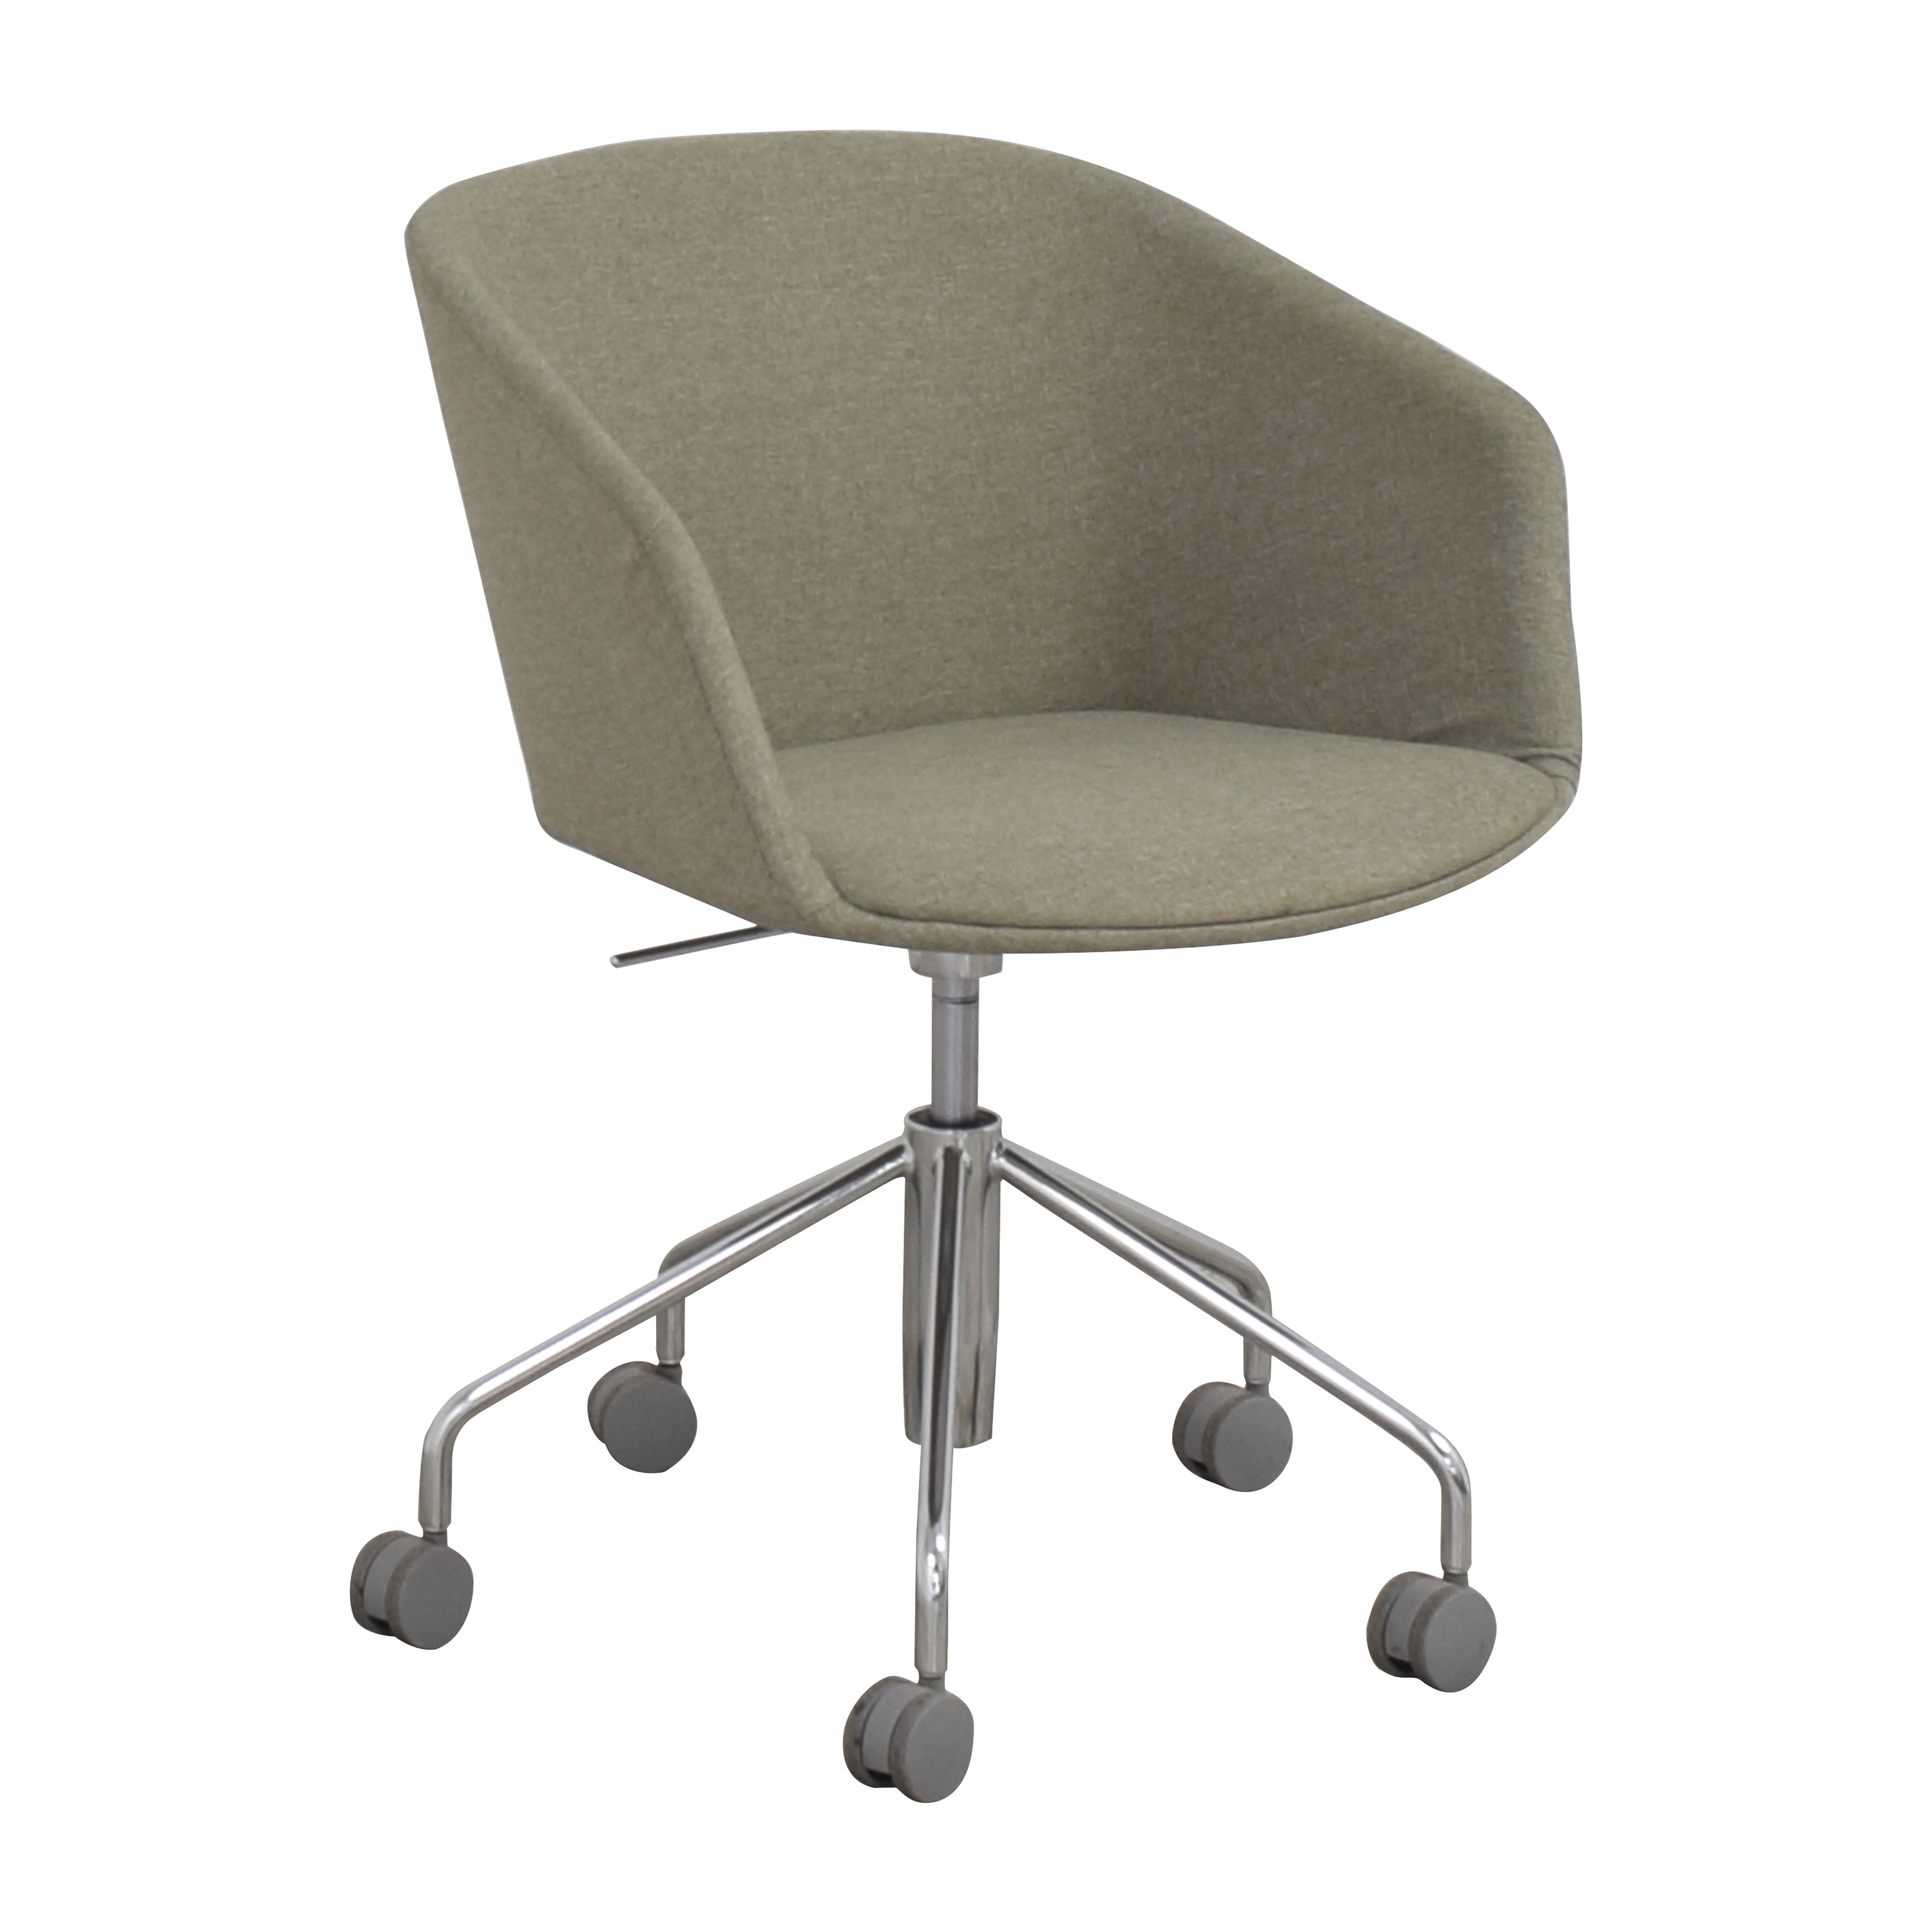 Poppin Poppin Pitch Meeting Chair dimensions